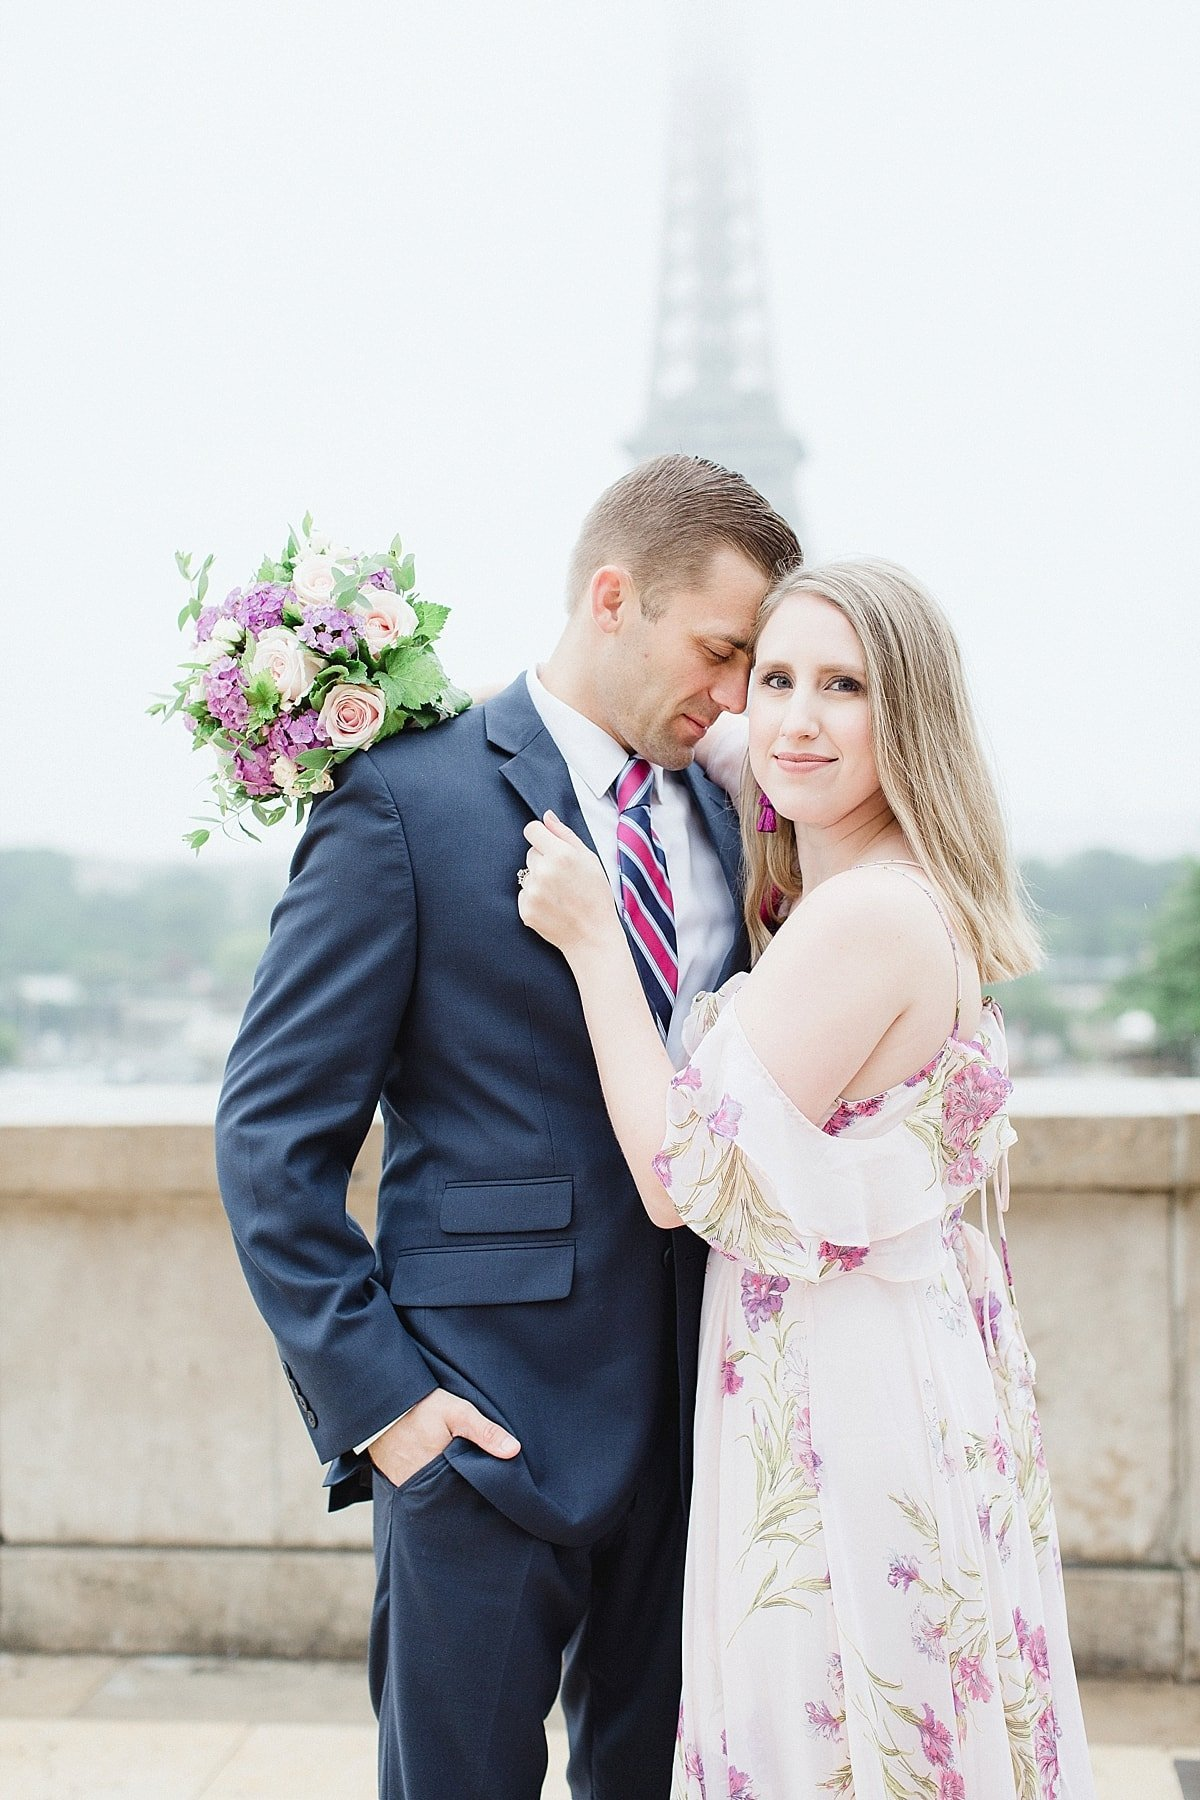 paris-photo-session-anniversary-alicia-yarrish-photography_16